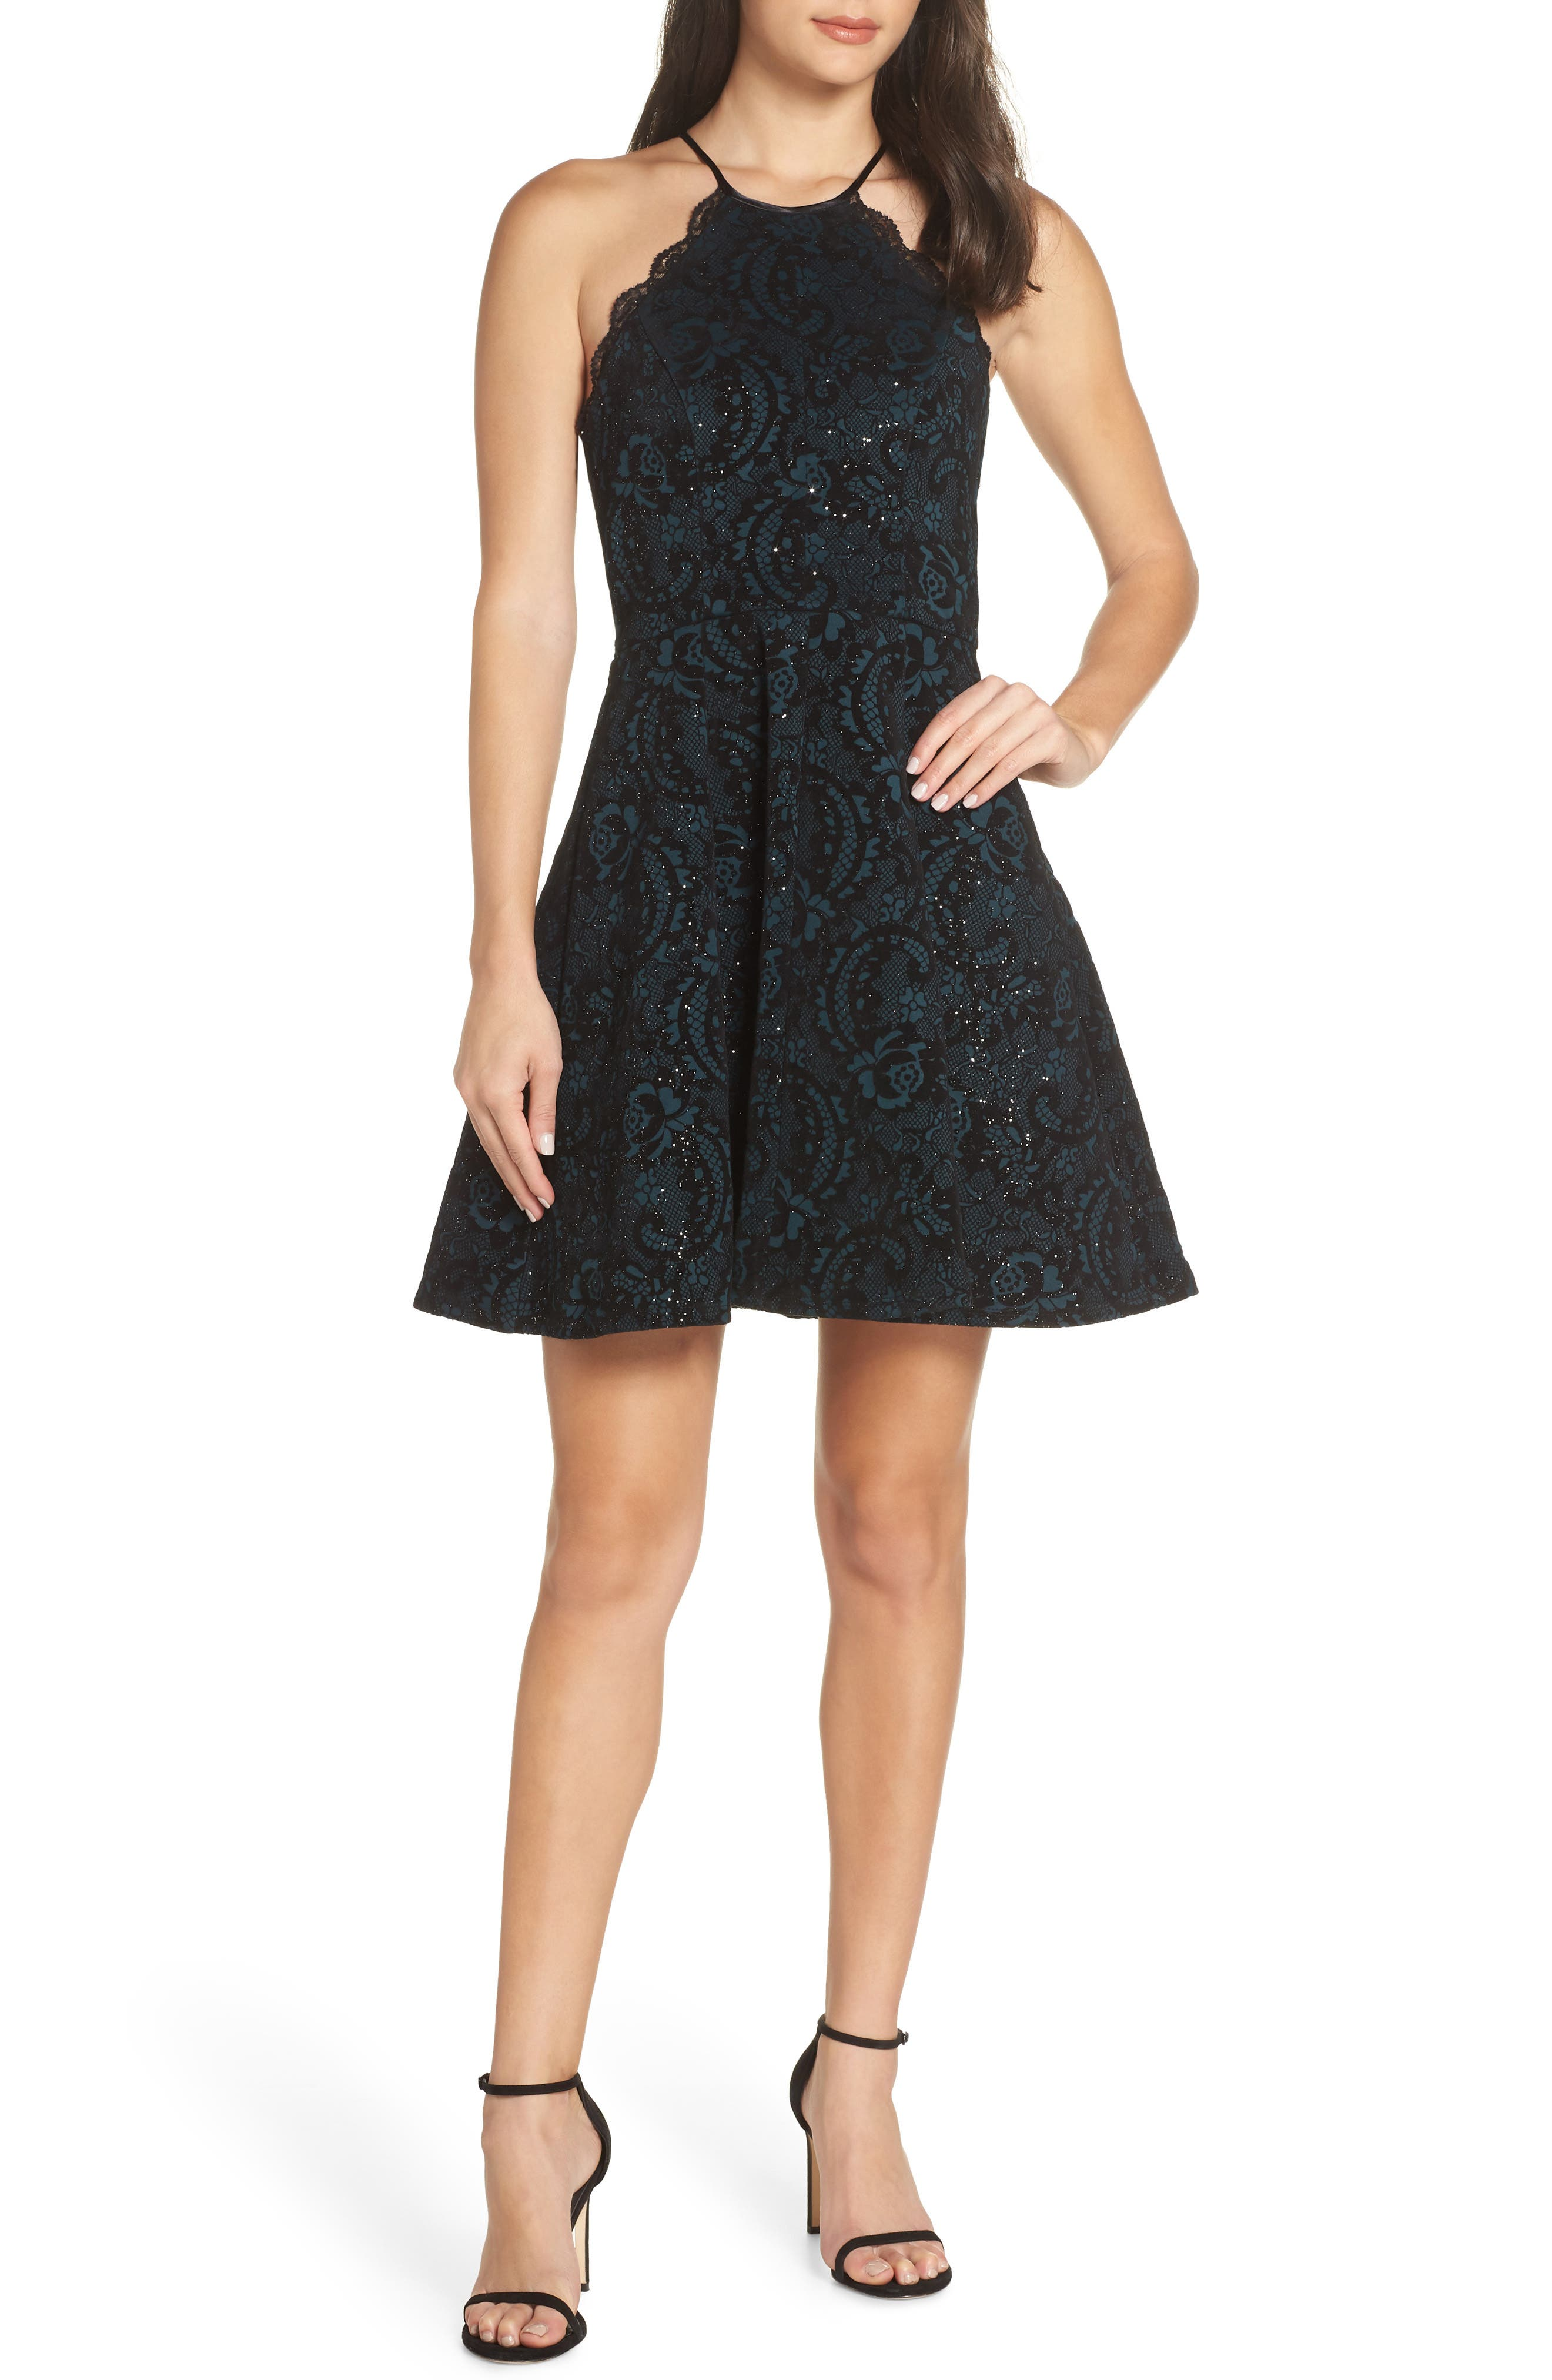 Flocked Fit & Flare Party Dress,                             Main thumbnail 1, color,                             BLACK/ TEAL